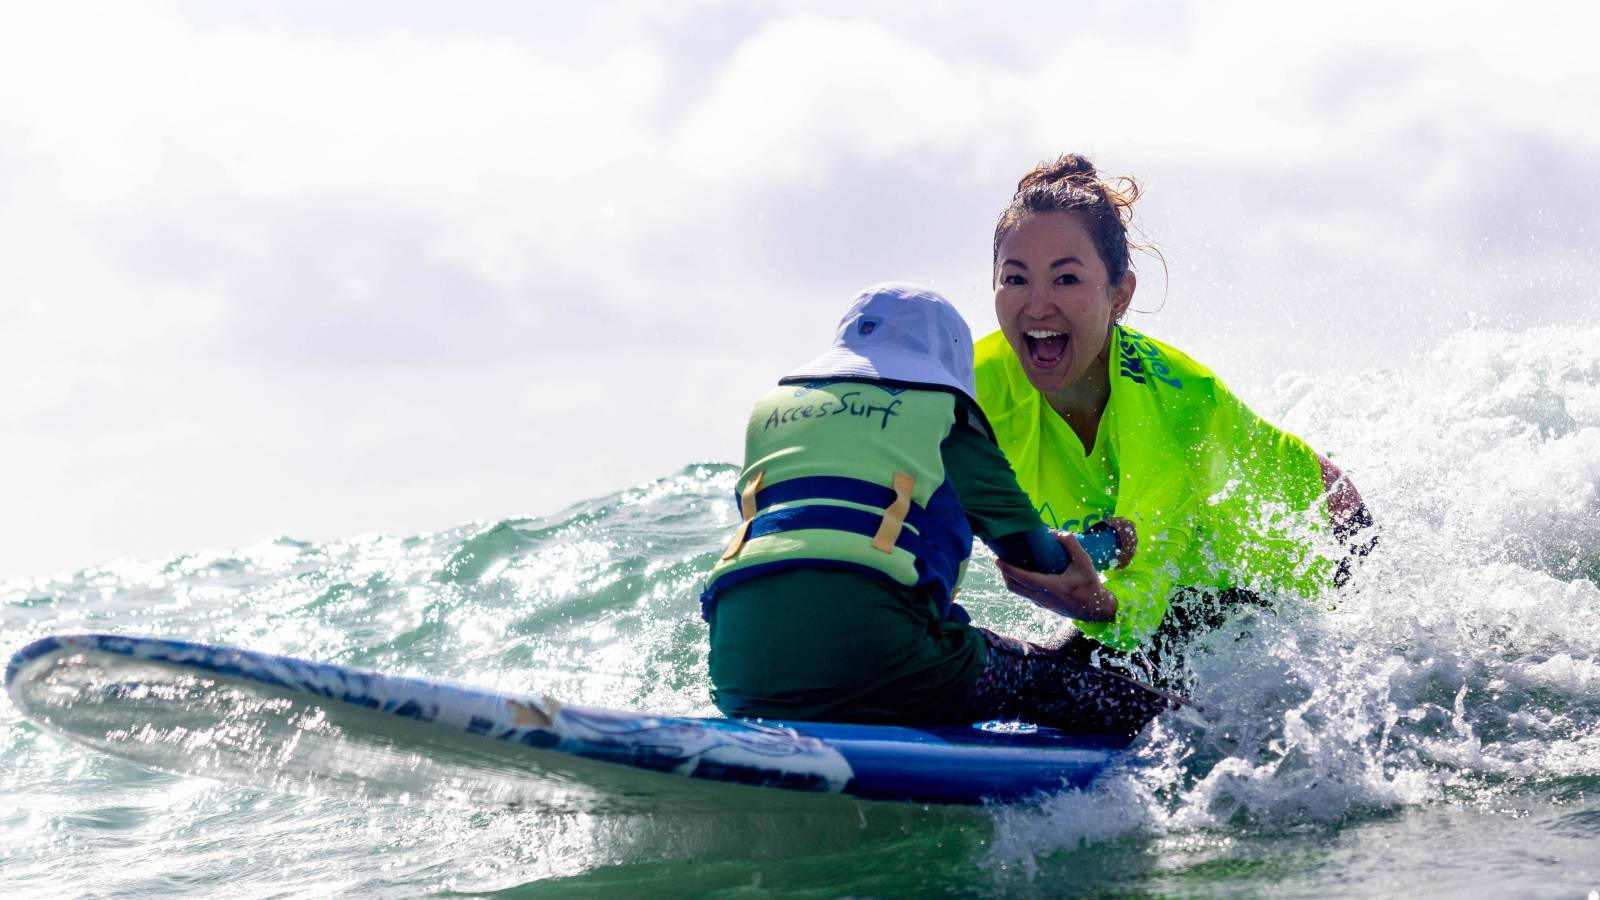 accesssurf volunteer and child on a wave